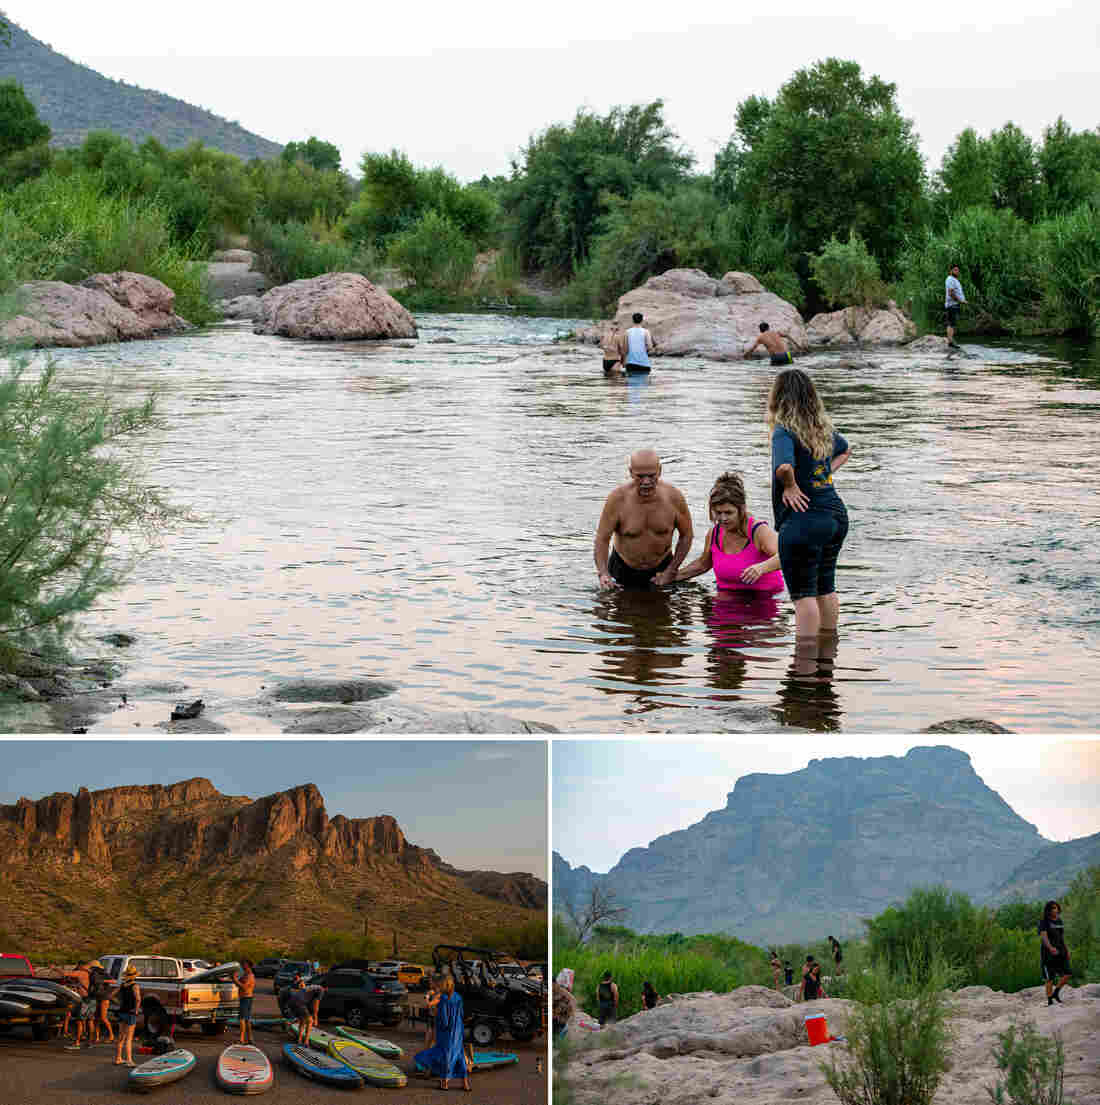 The Salt River, in Arizona, a popular place for locals to swim, fish, or go tubing in the hot summer months became even more of an escape point during the pandemic according to photographer Ash Ponders.